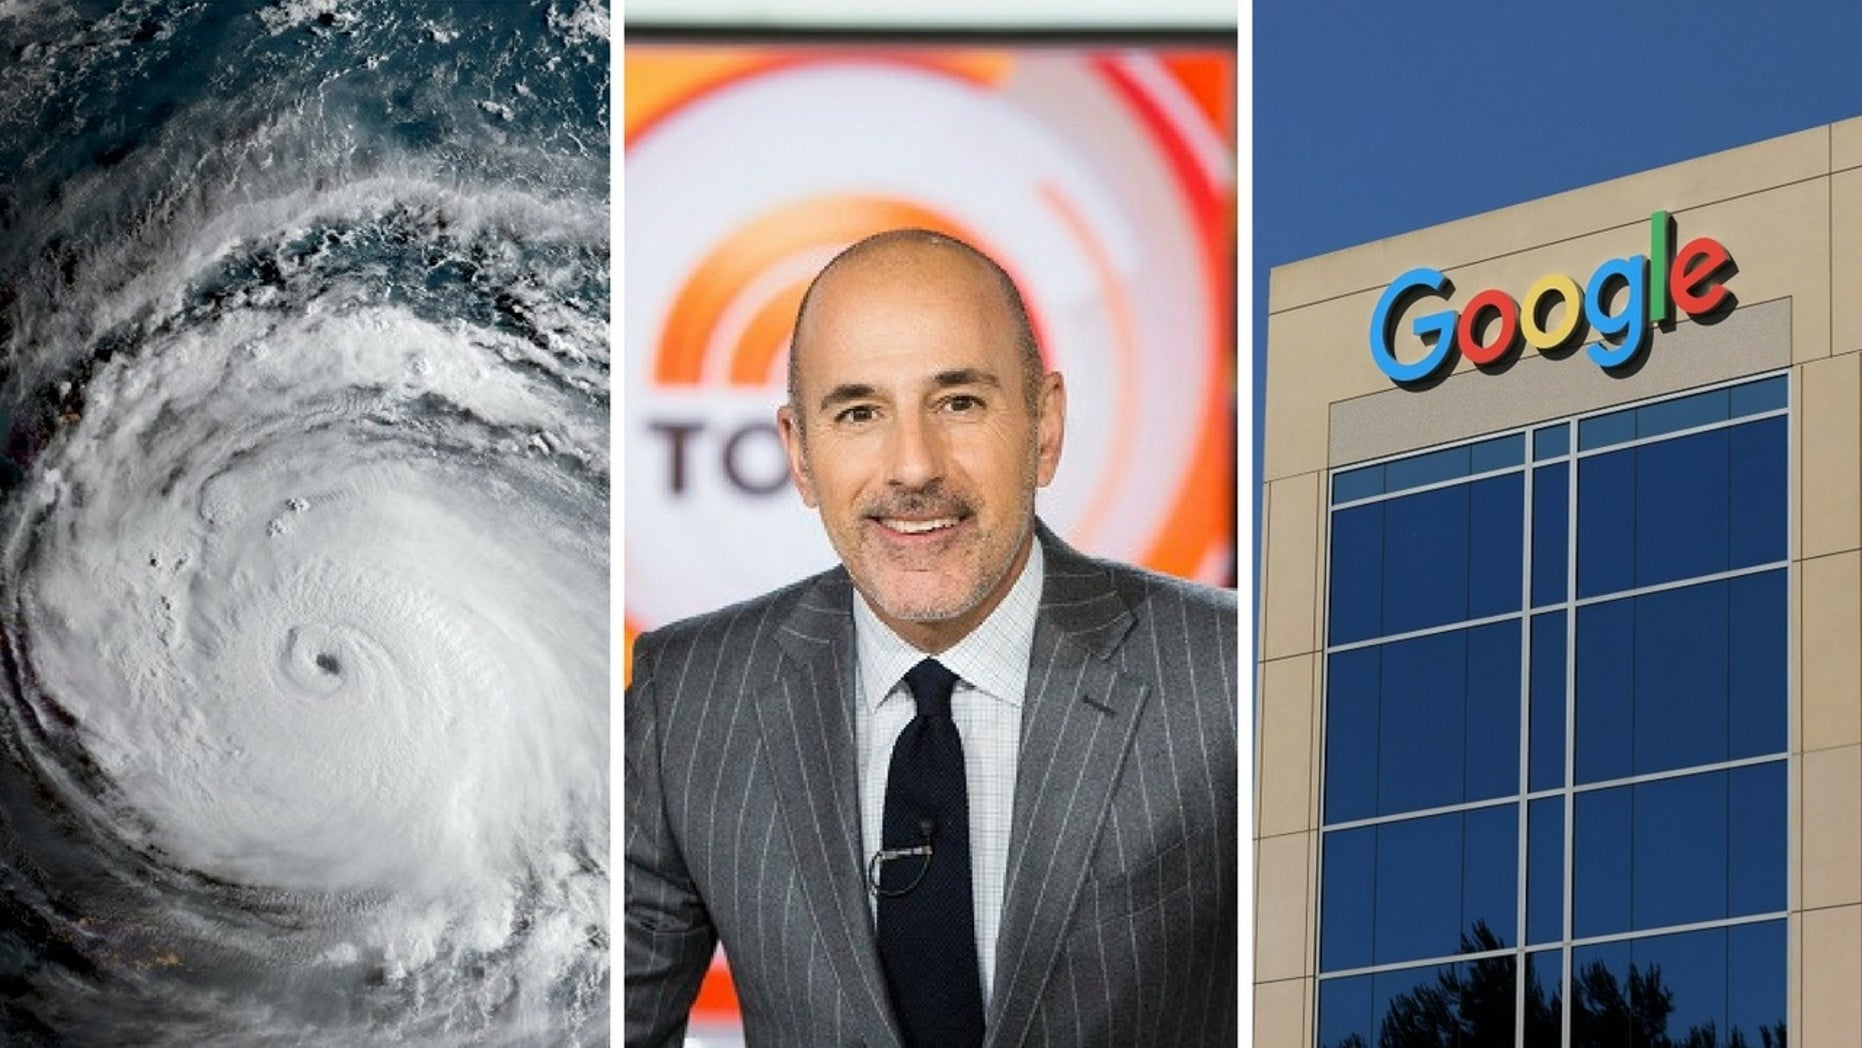 Google revealed Matt Lauer and Hurricane Irma were 2017's top searches.